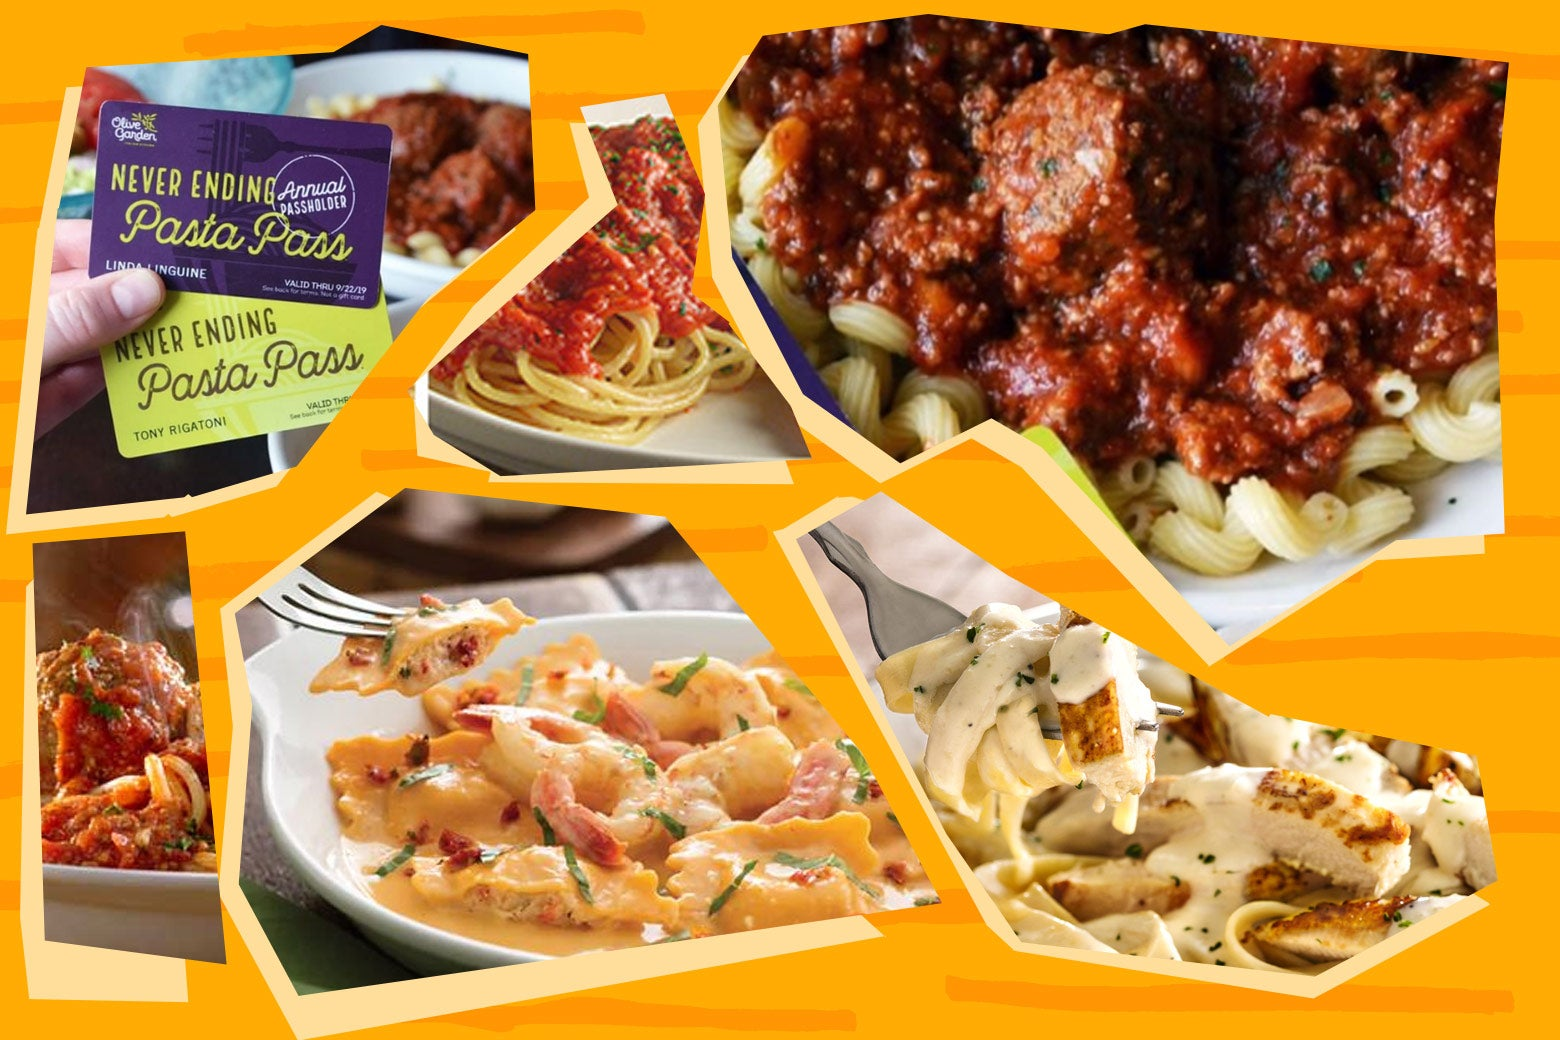 A feast of various pastas from Olive Garden or whatever Pasta Pass branding they have out.